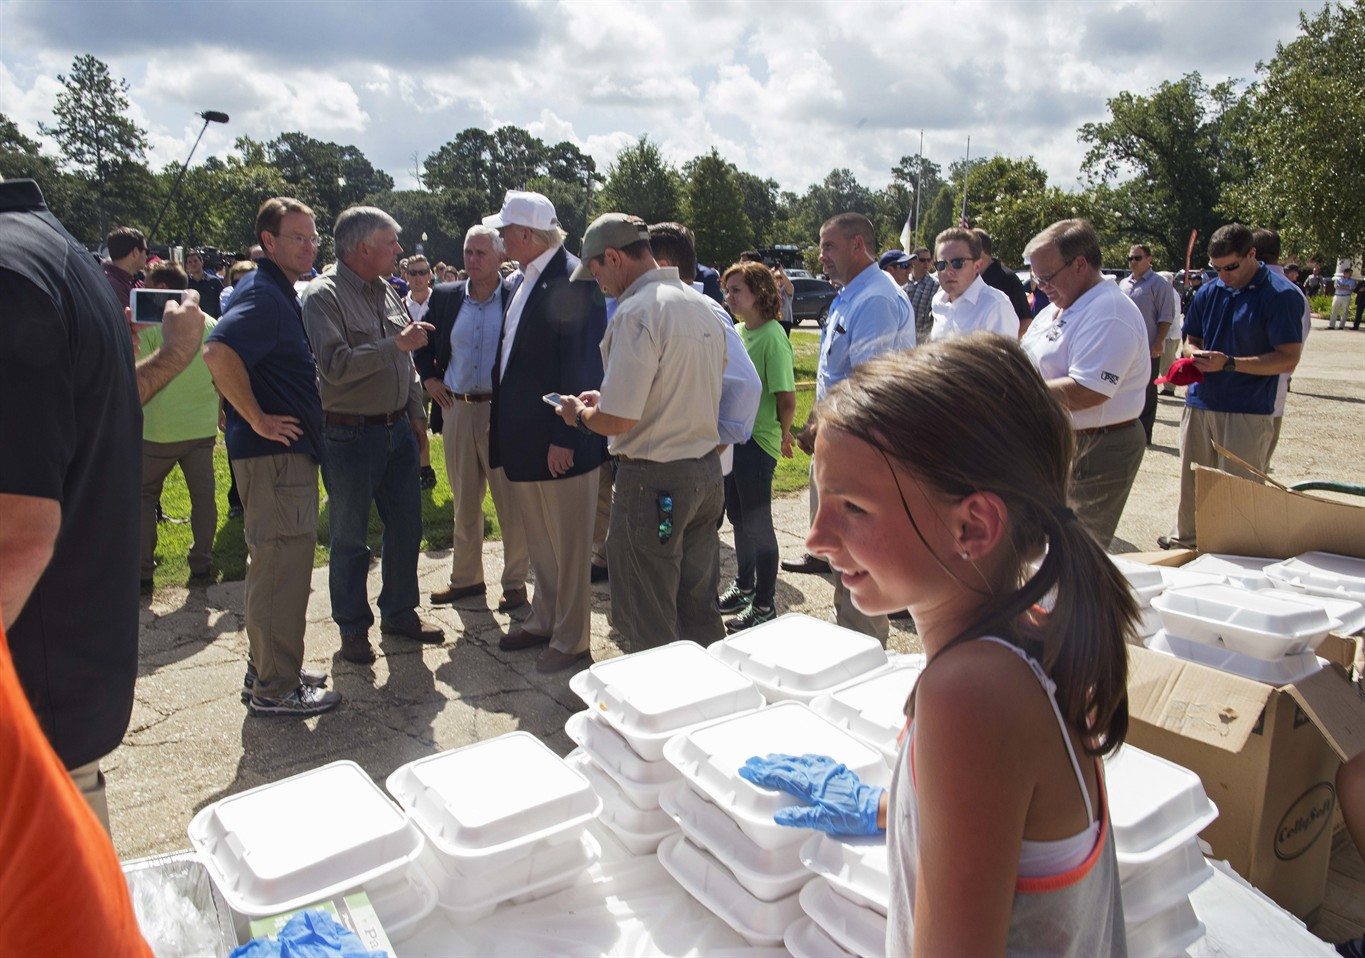 Obama will visit flood victims next week